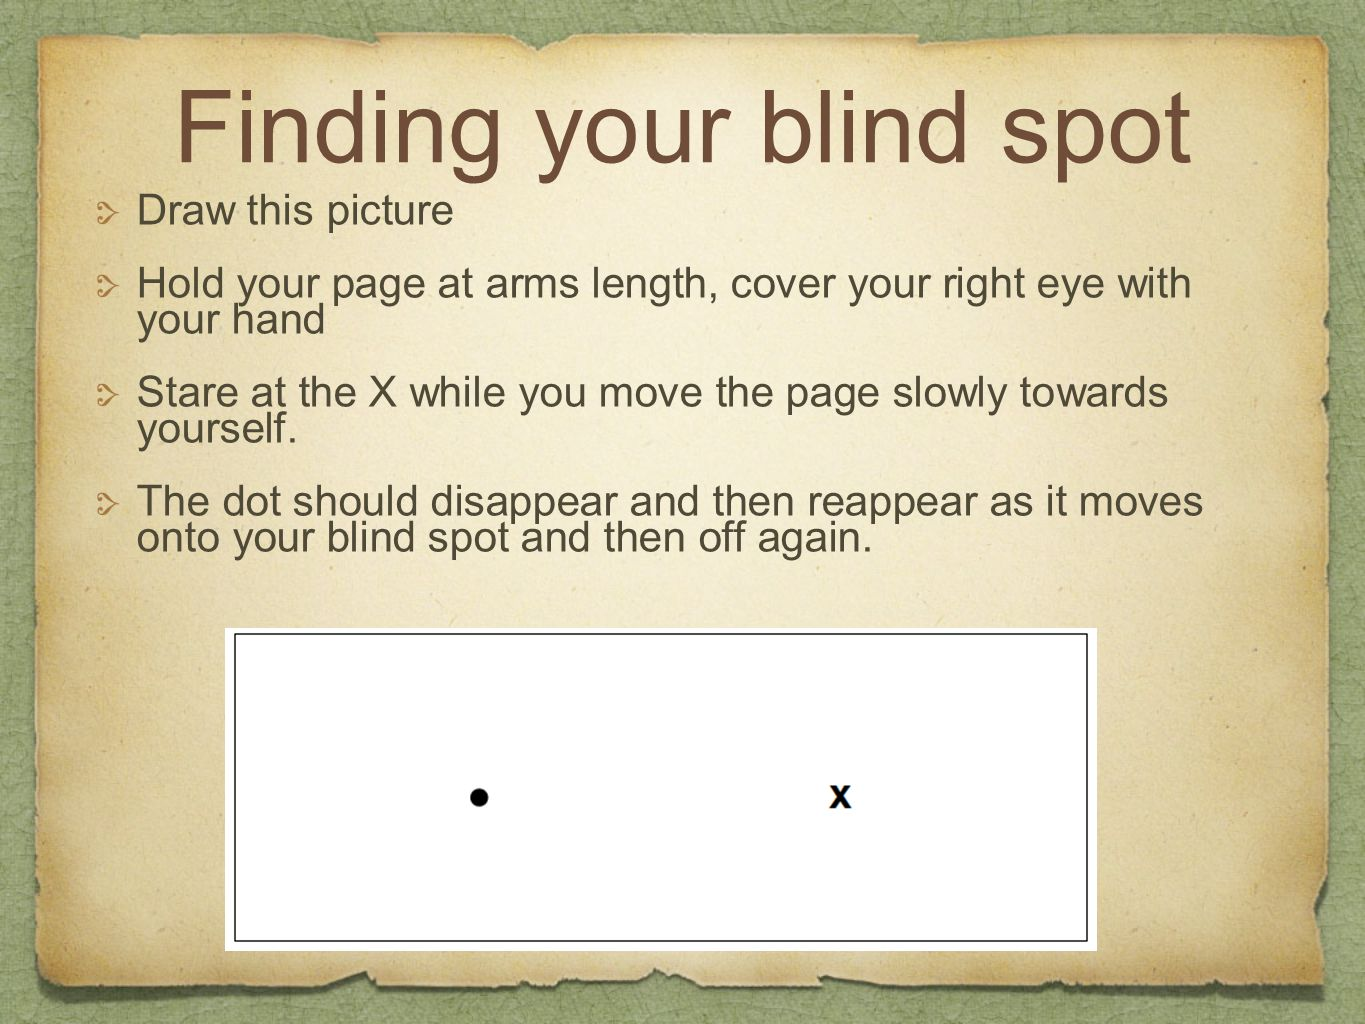 Finding your blind spot